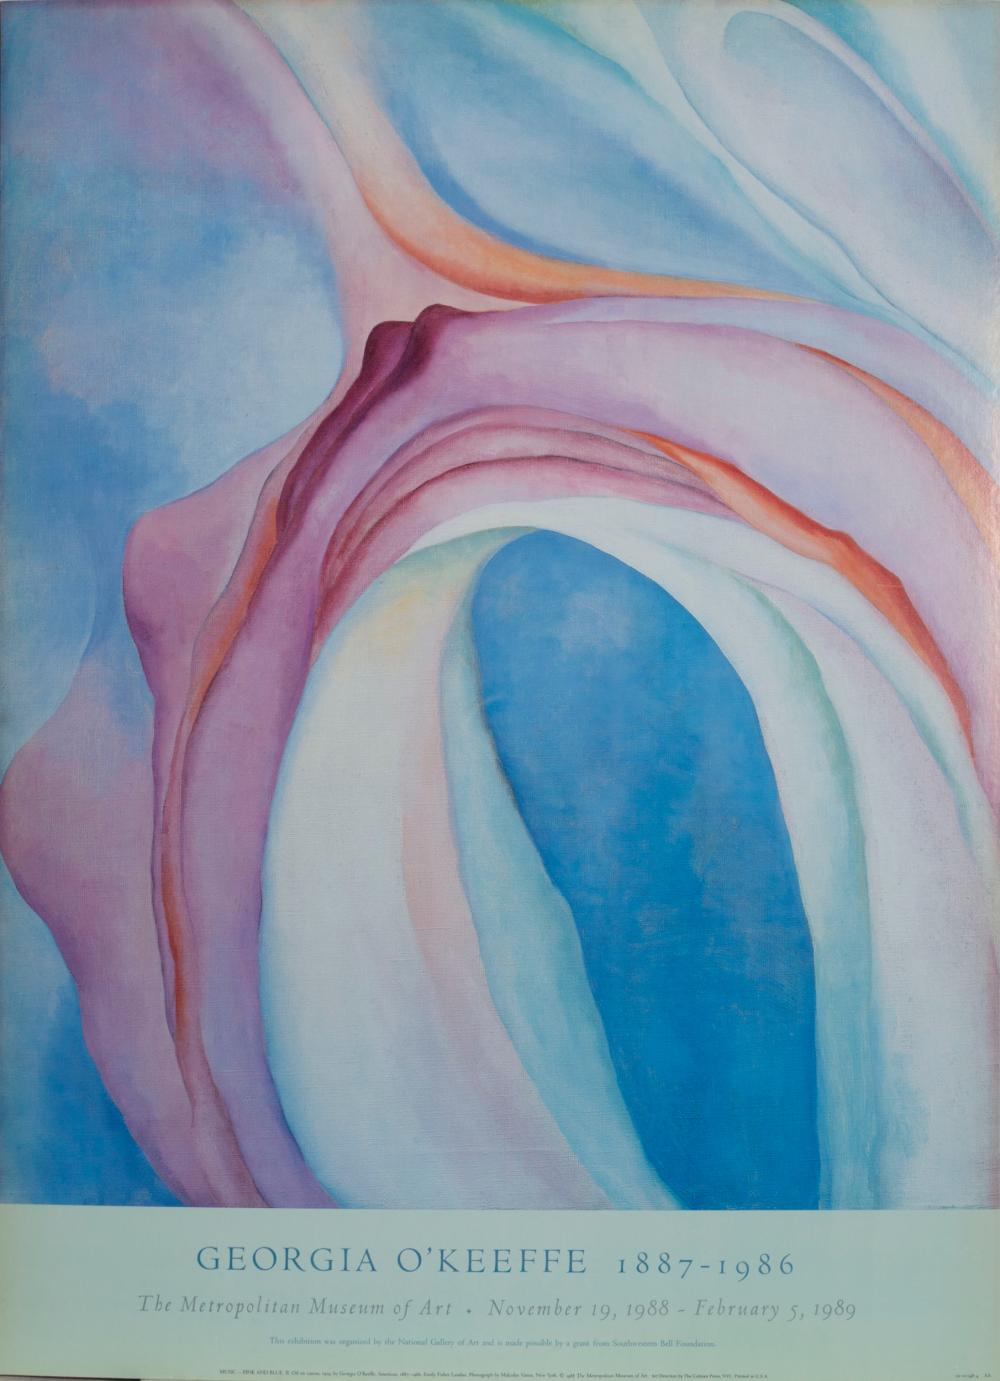 Georgia O'Keeffe, Music, Pink and Blue II, Poster on board